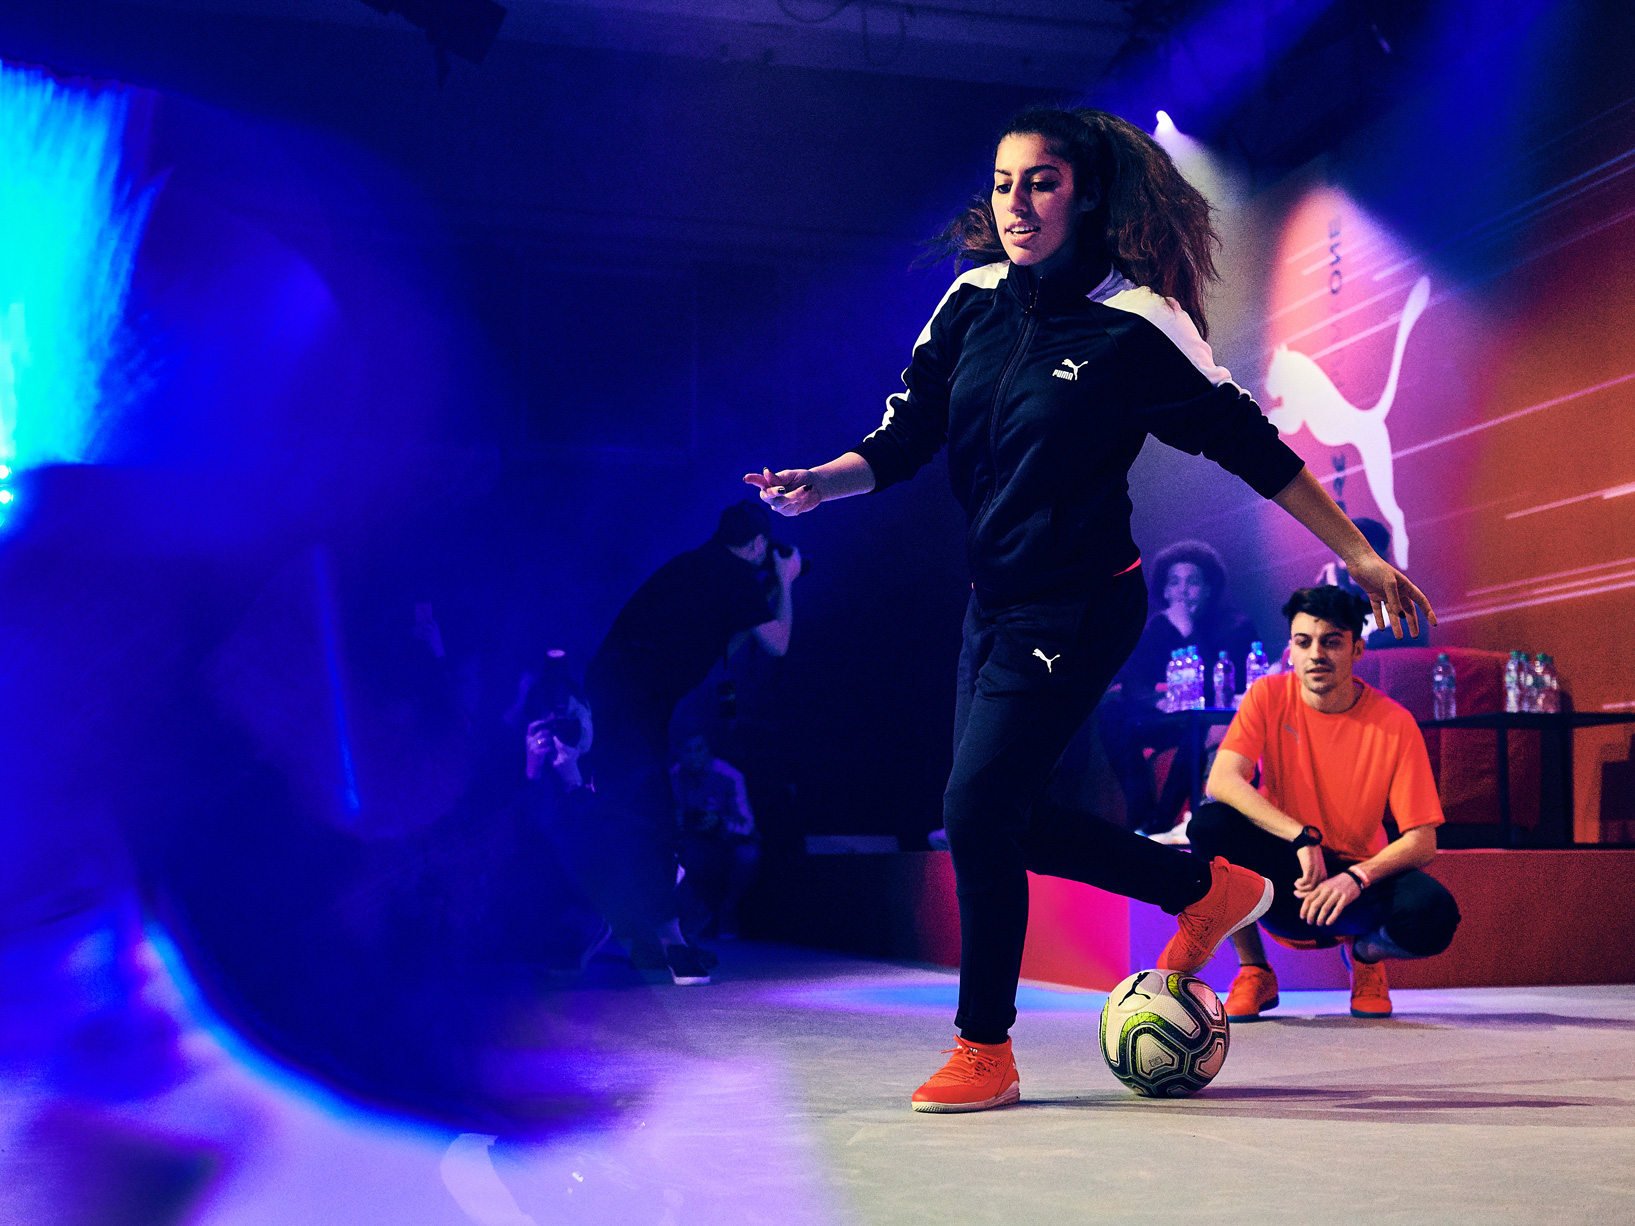 Puma Power Up event in Berlin